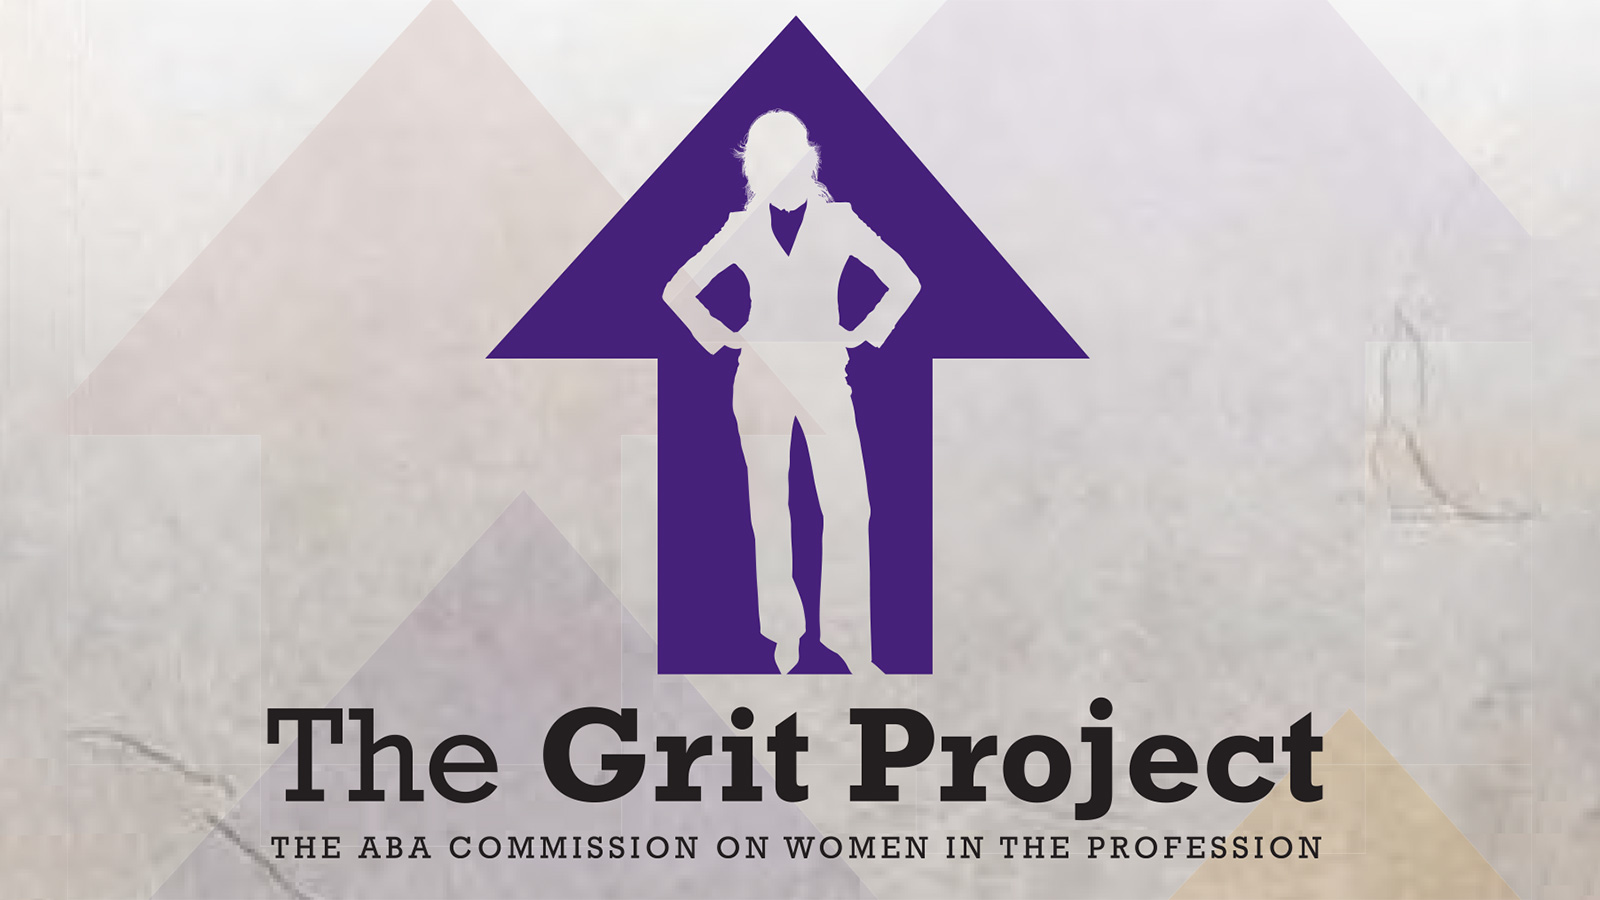 The Grit Project